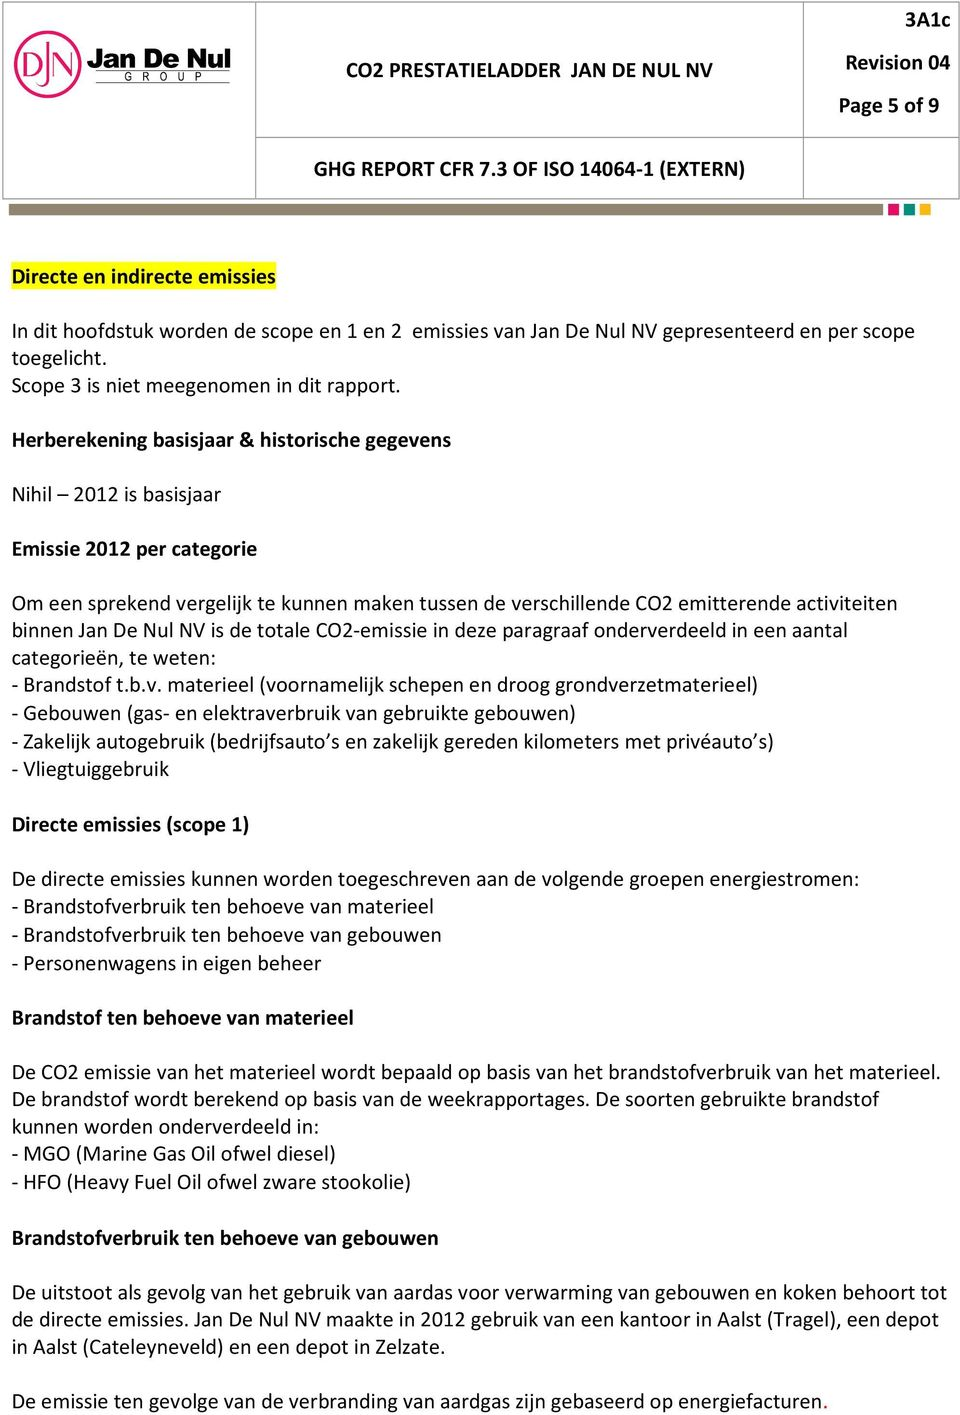 Jan De Nul NV is de totale CO2 emissie in deze paragraaf onderve